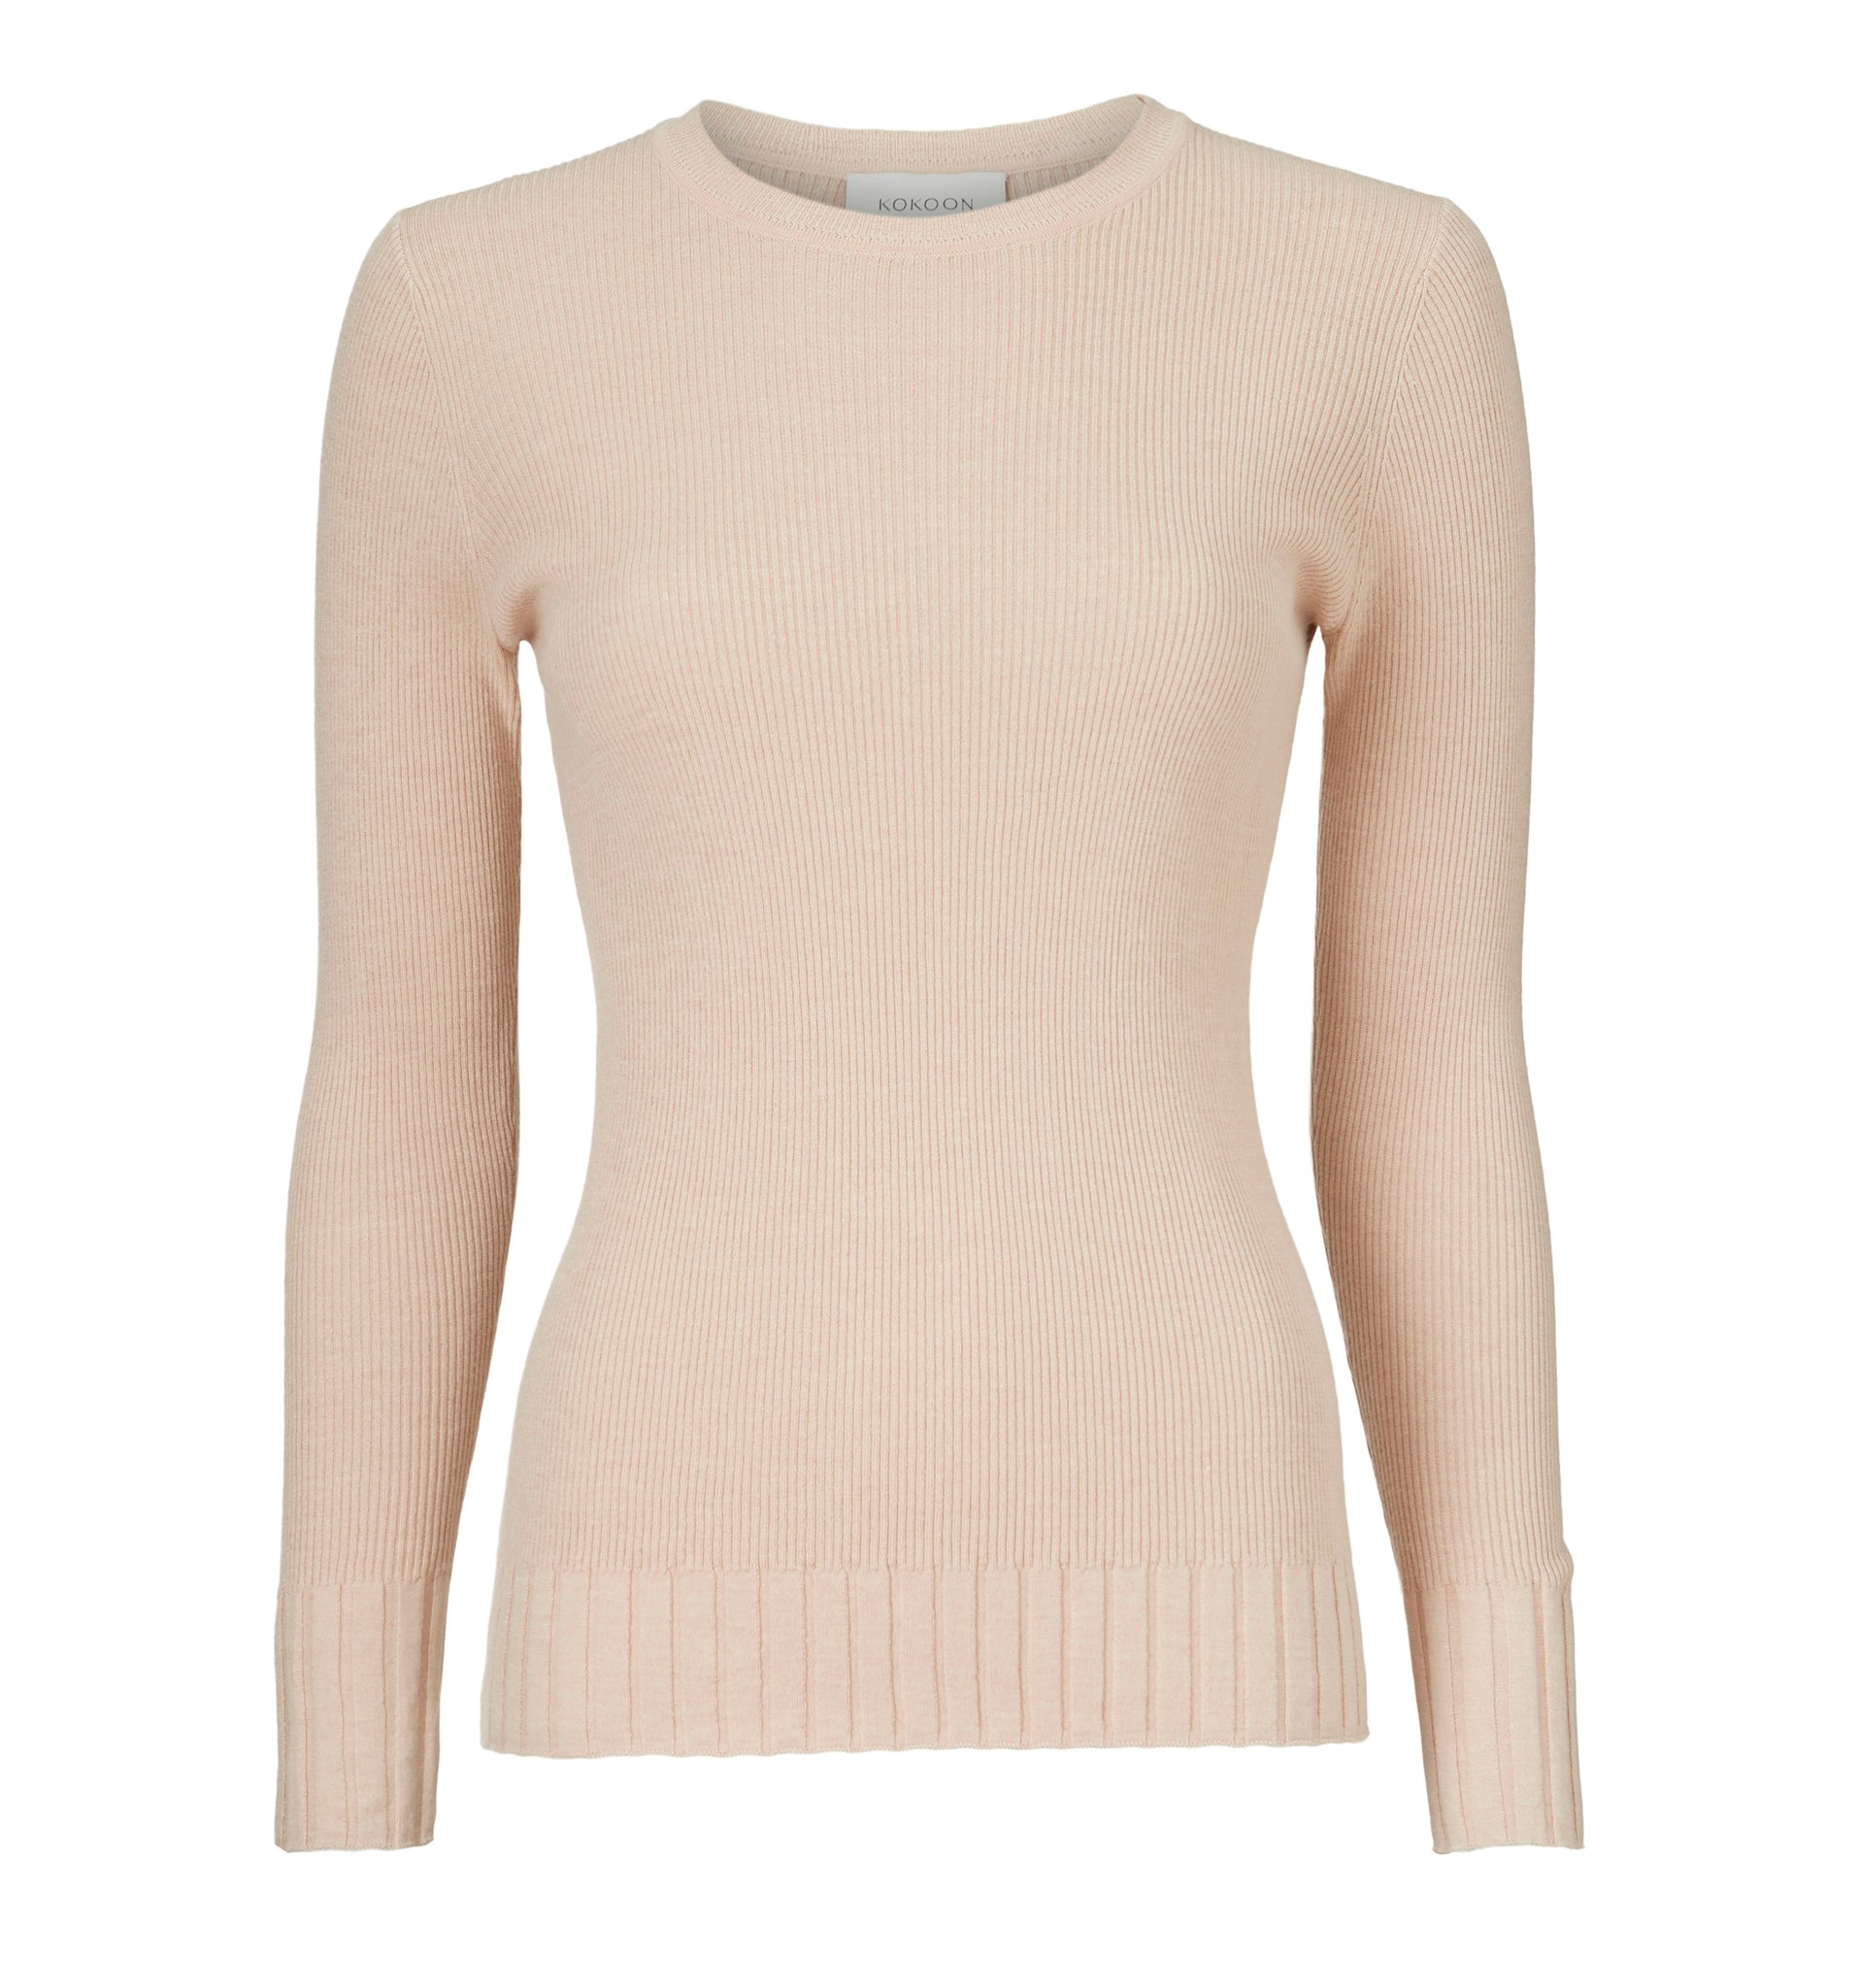 Billie Knit - Oyster - Silk/Wool